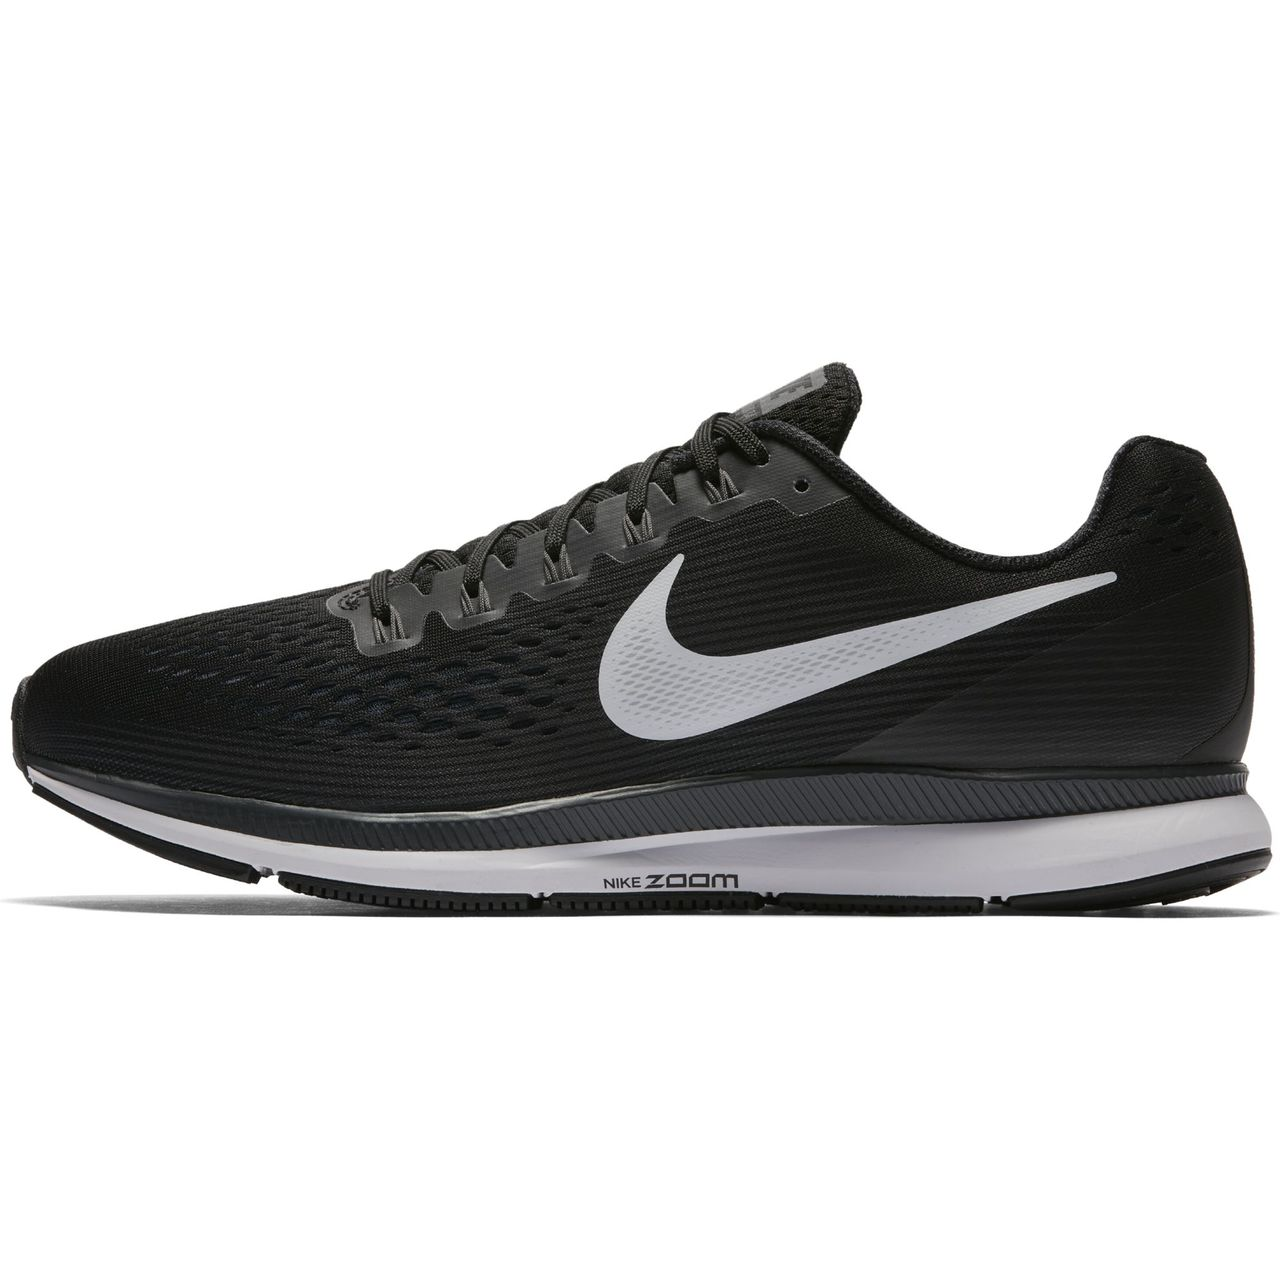 reputable site 14f80 7ded5 Nike Men's Air Zoom Pegasus 34 - Black/White